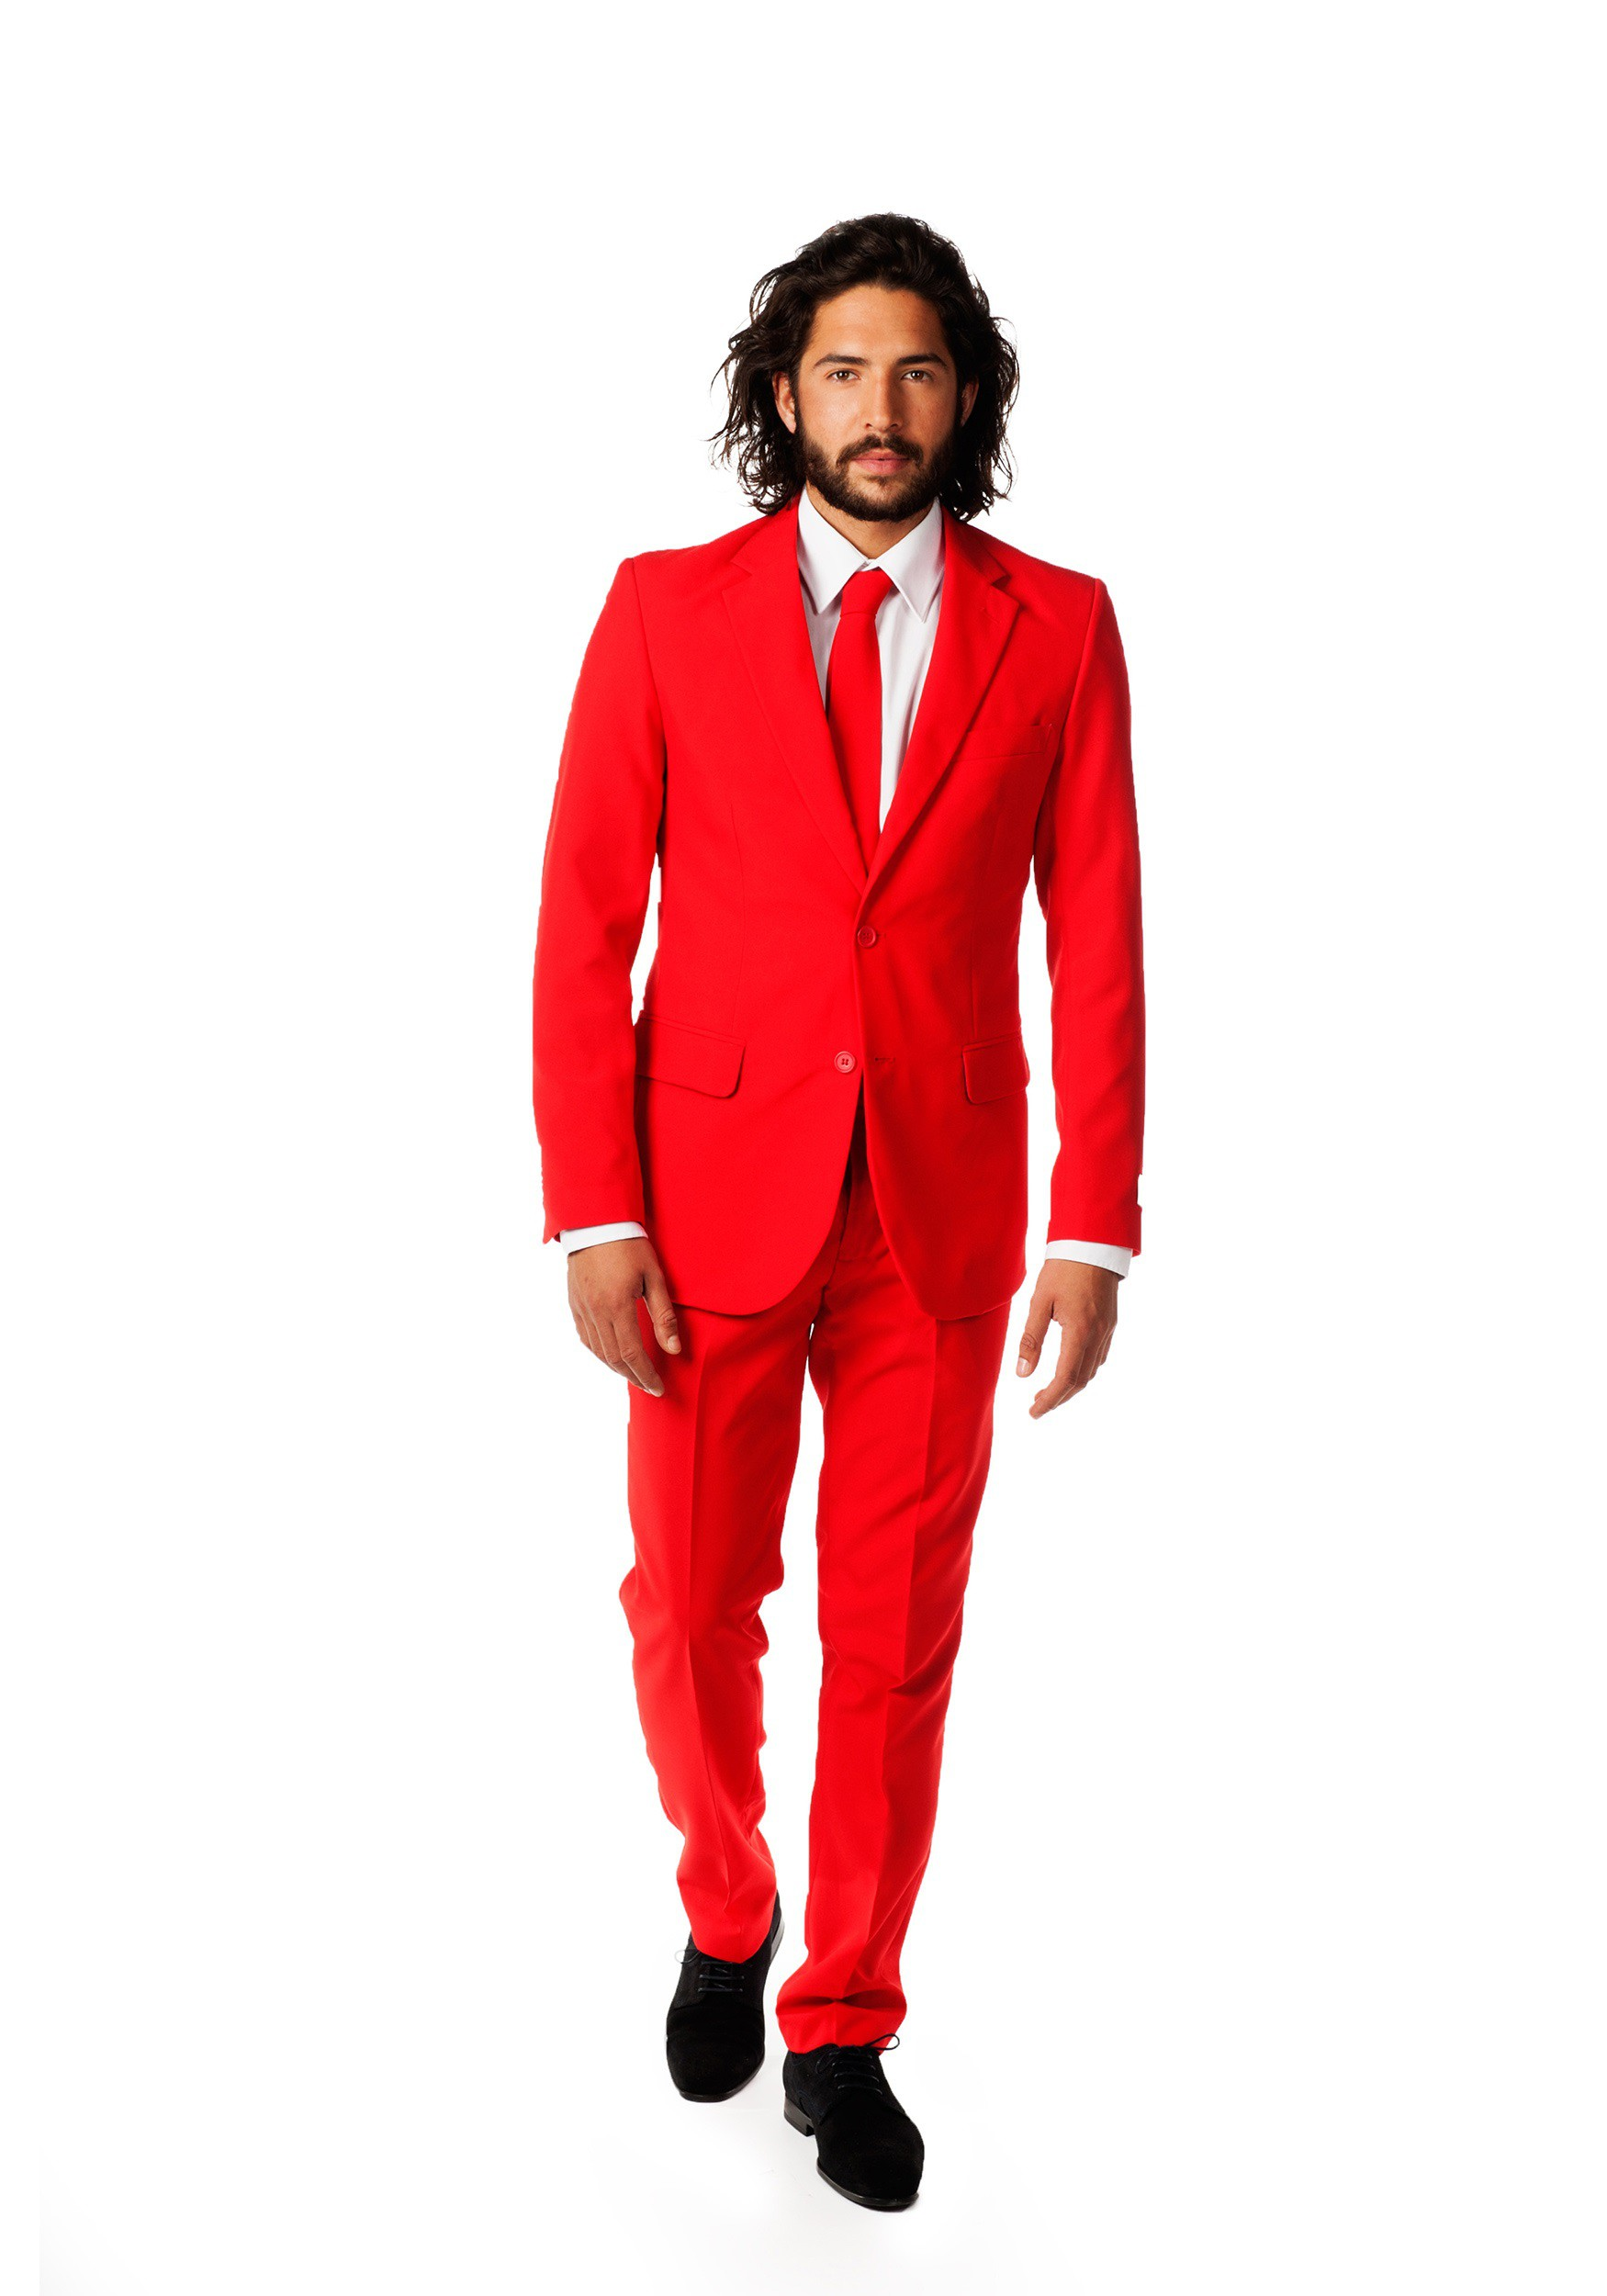 Men's Opposuits Red Suit